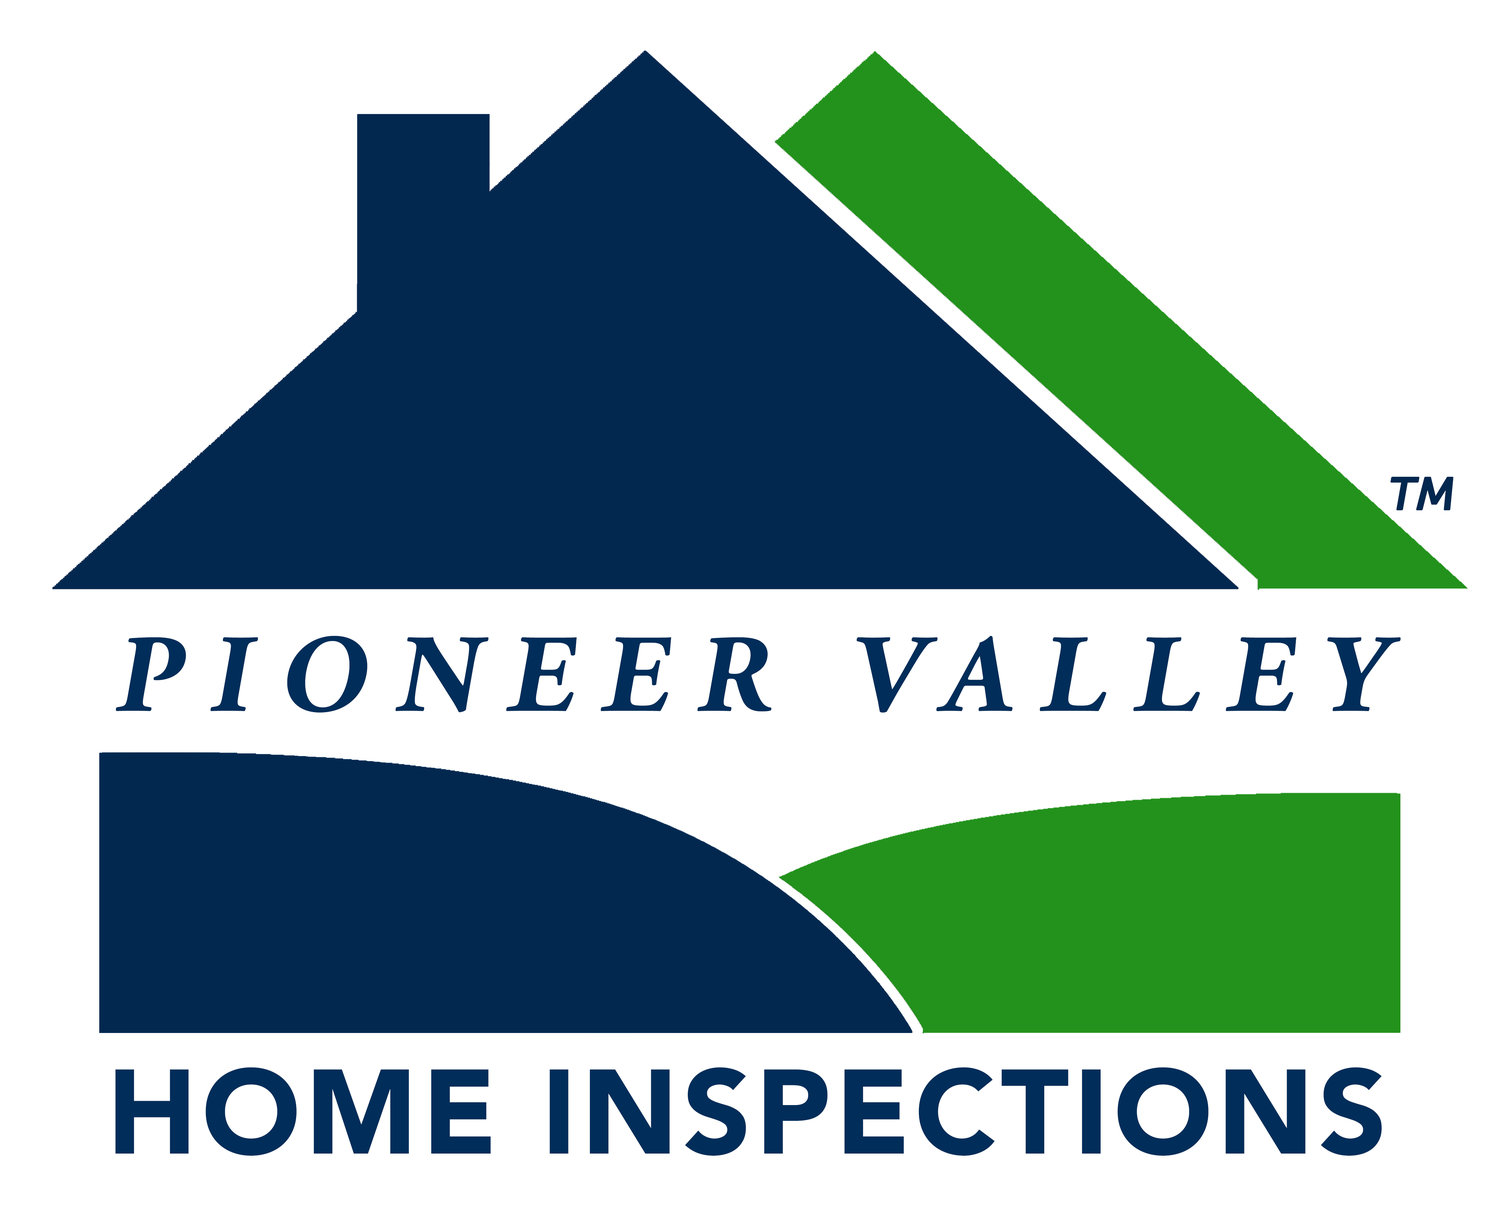 Pioneer Valley Home Inspections